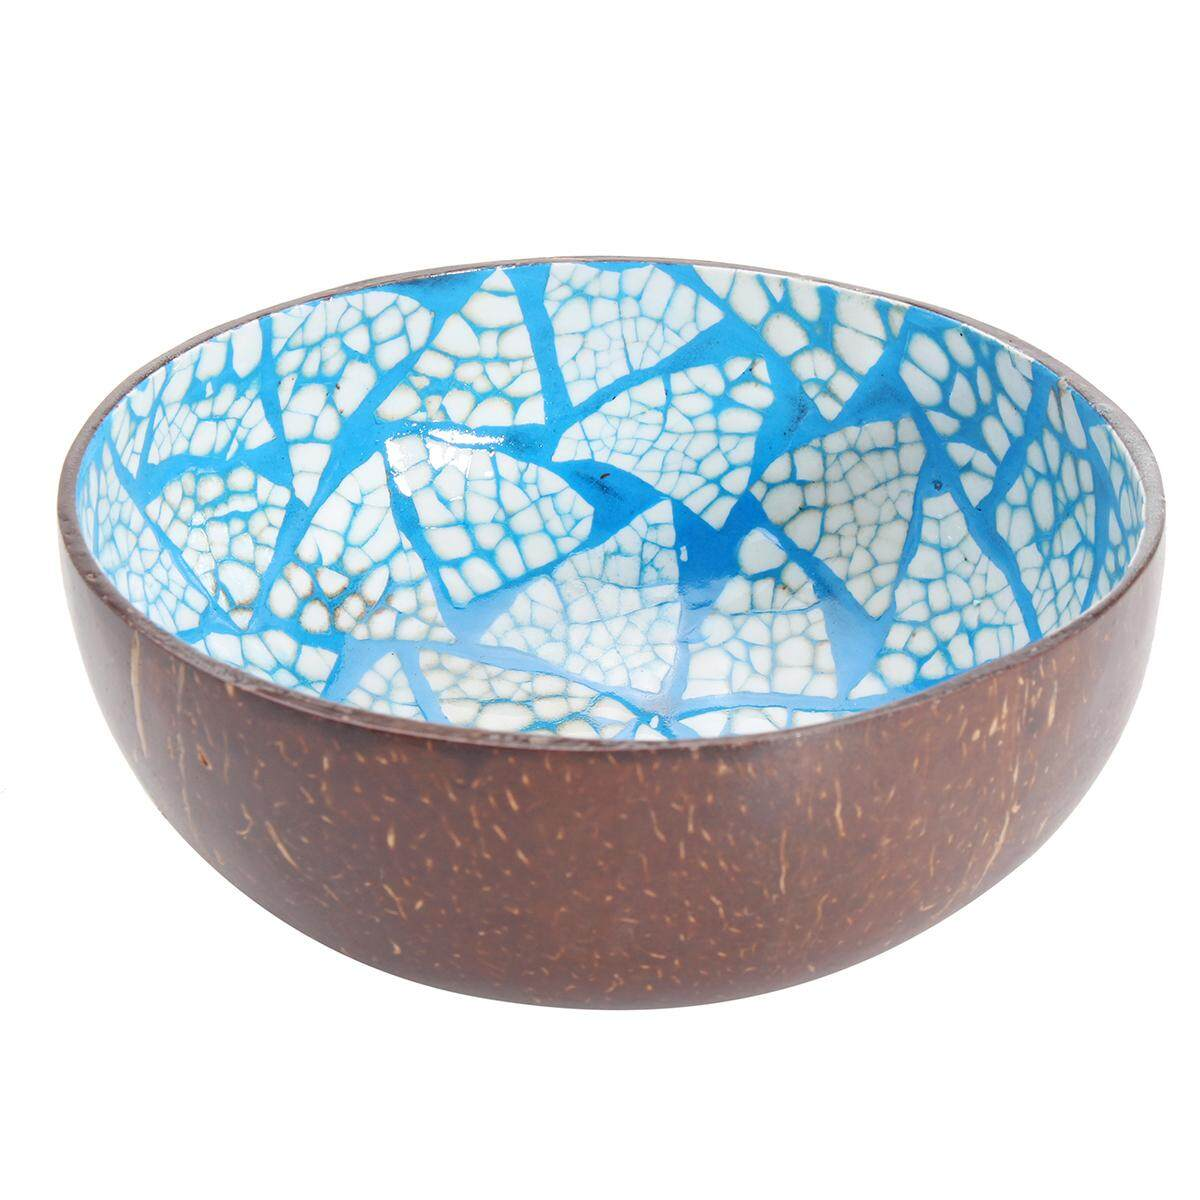 Natural Coconut Shell Bowl Dishes Mosaic Handmade Paint Craft Home Kitchen Decor # Blue - intl